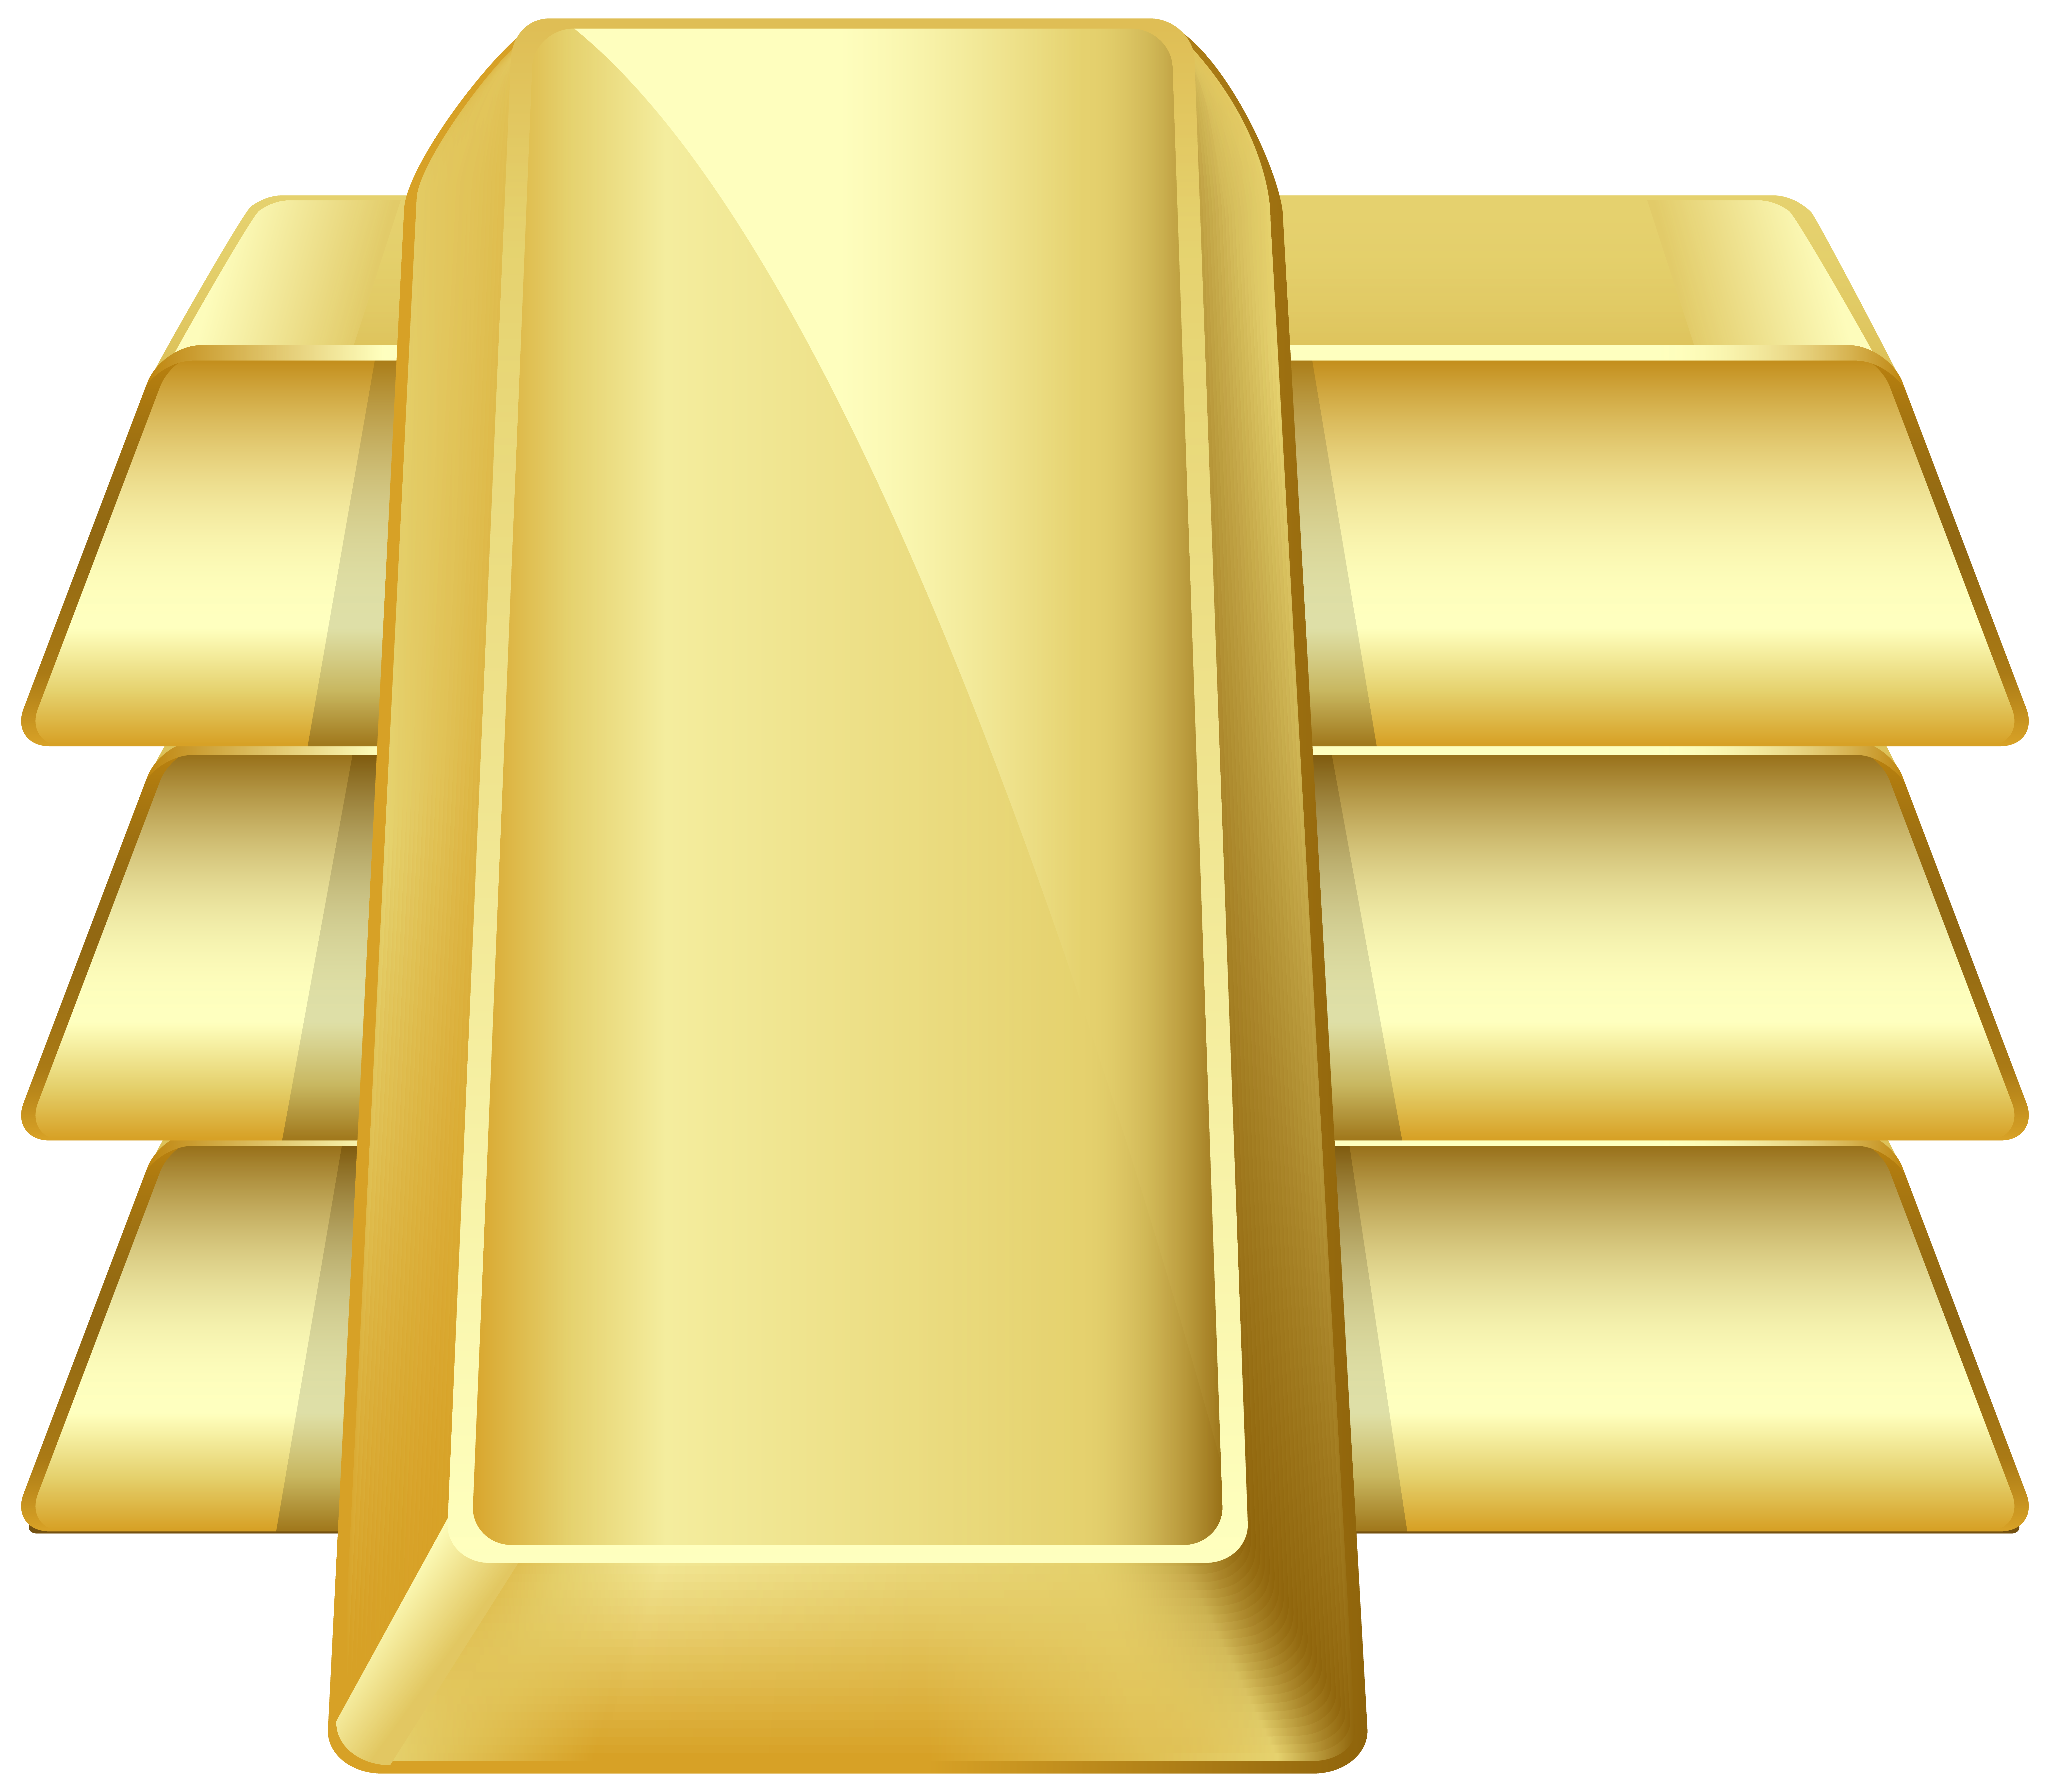 Gold bars clipart graphic stock Gold Bars Transparent PNG Clip Art Image | Gallery Yopriceville ... graphic stock